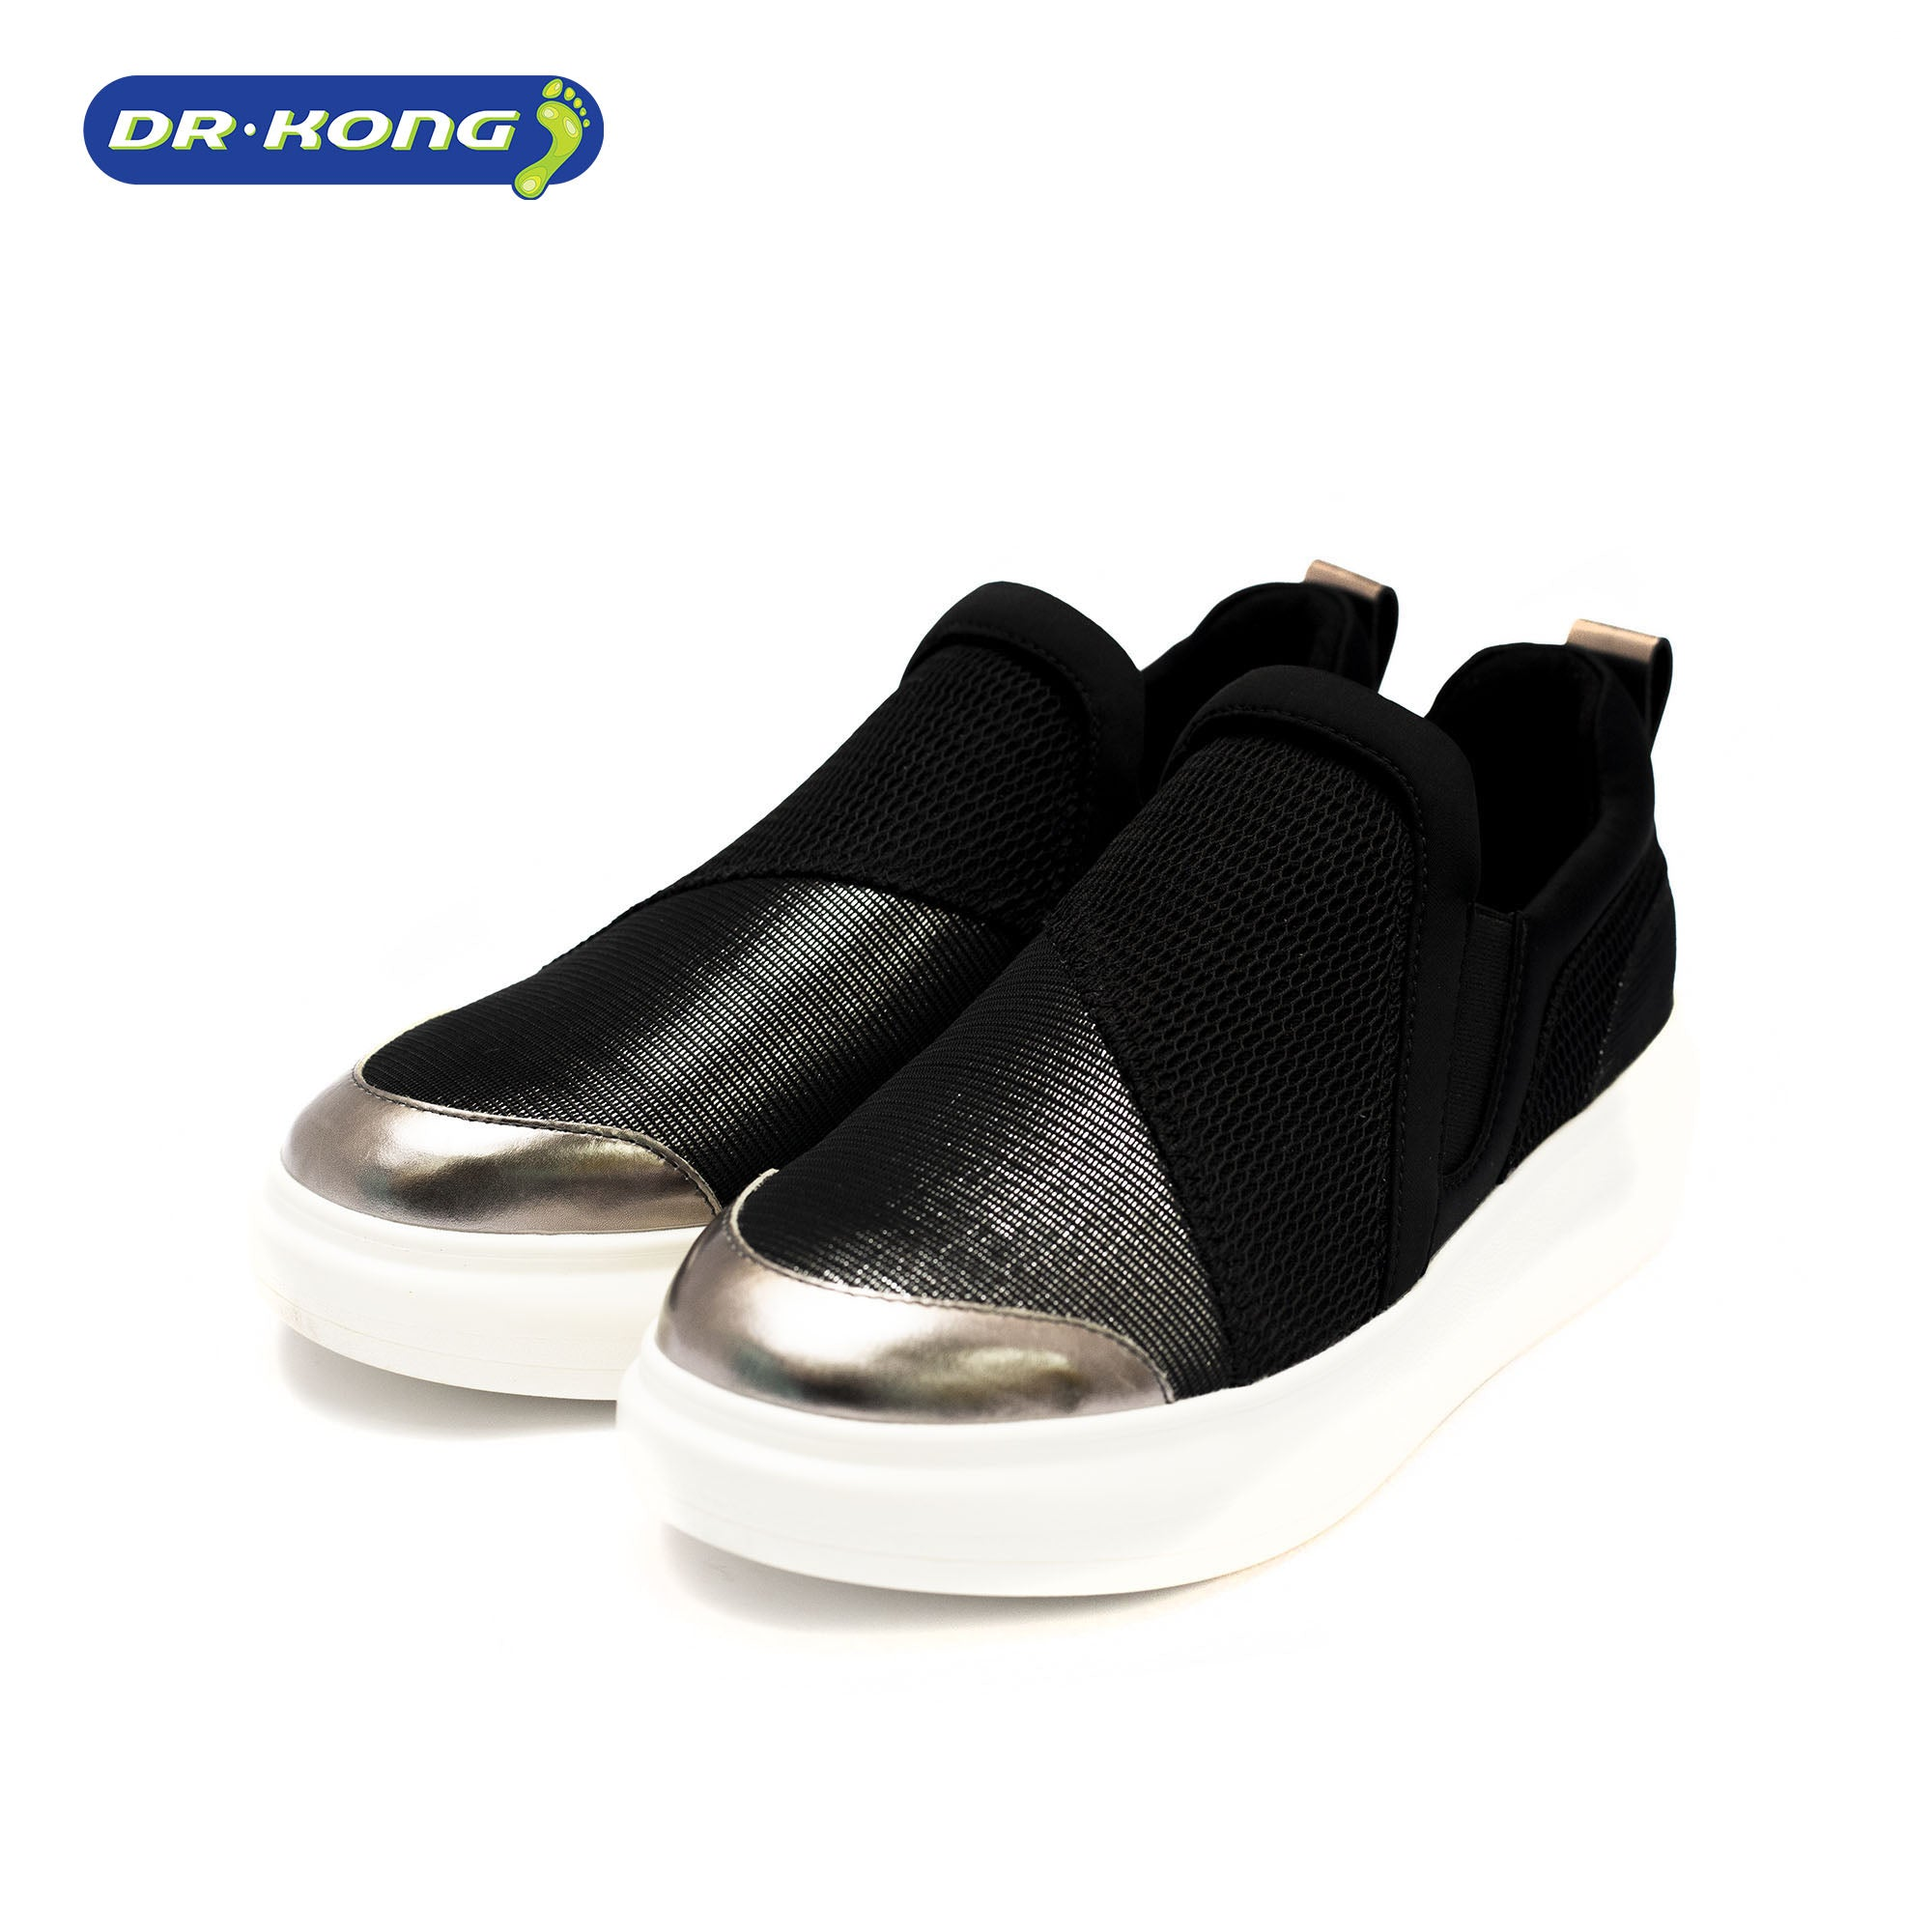 Dr. Kong Healthy Slip On (Black Metallic) w5000013